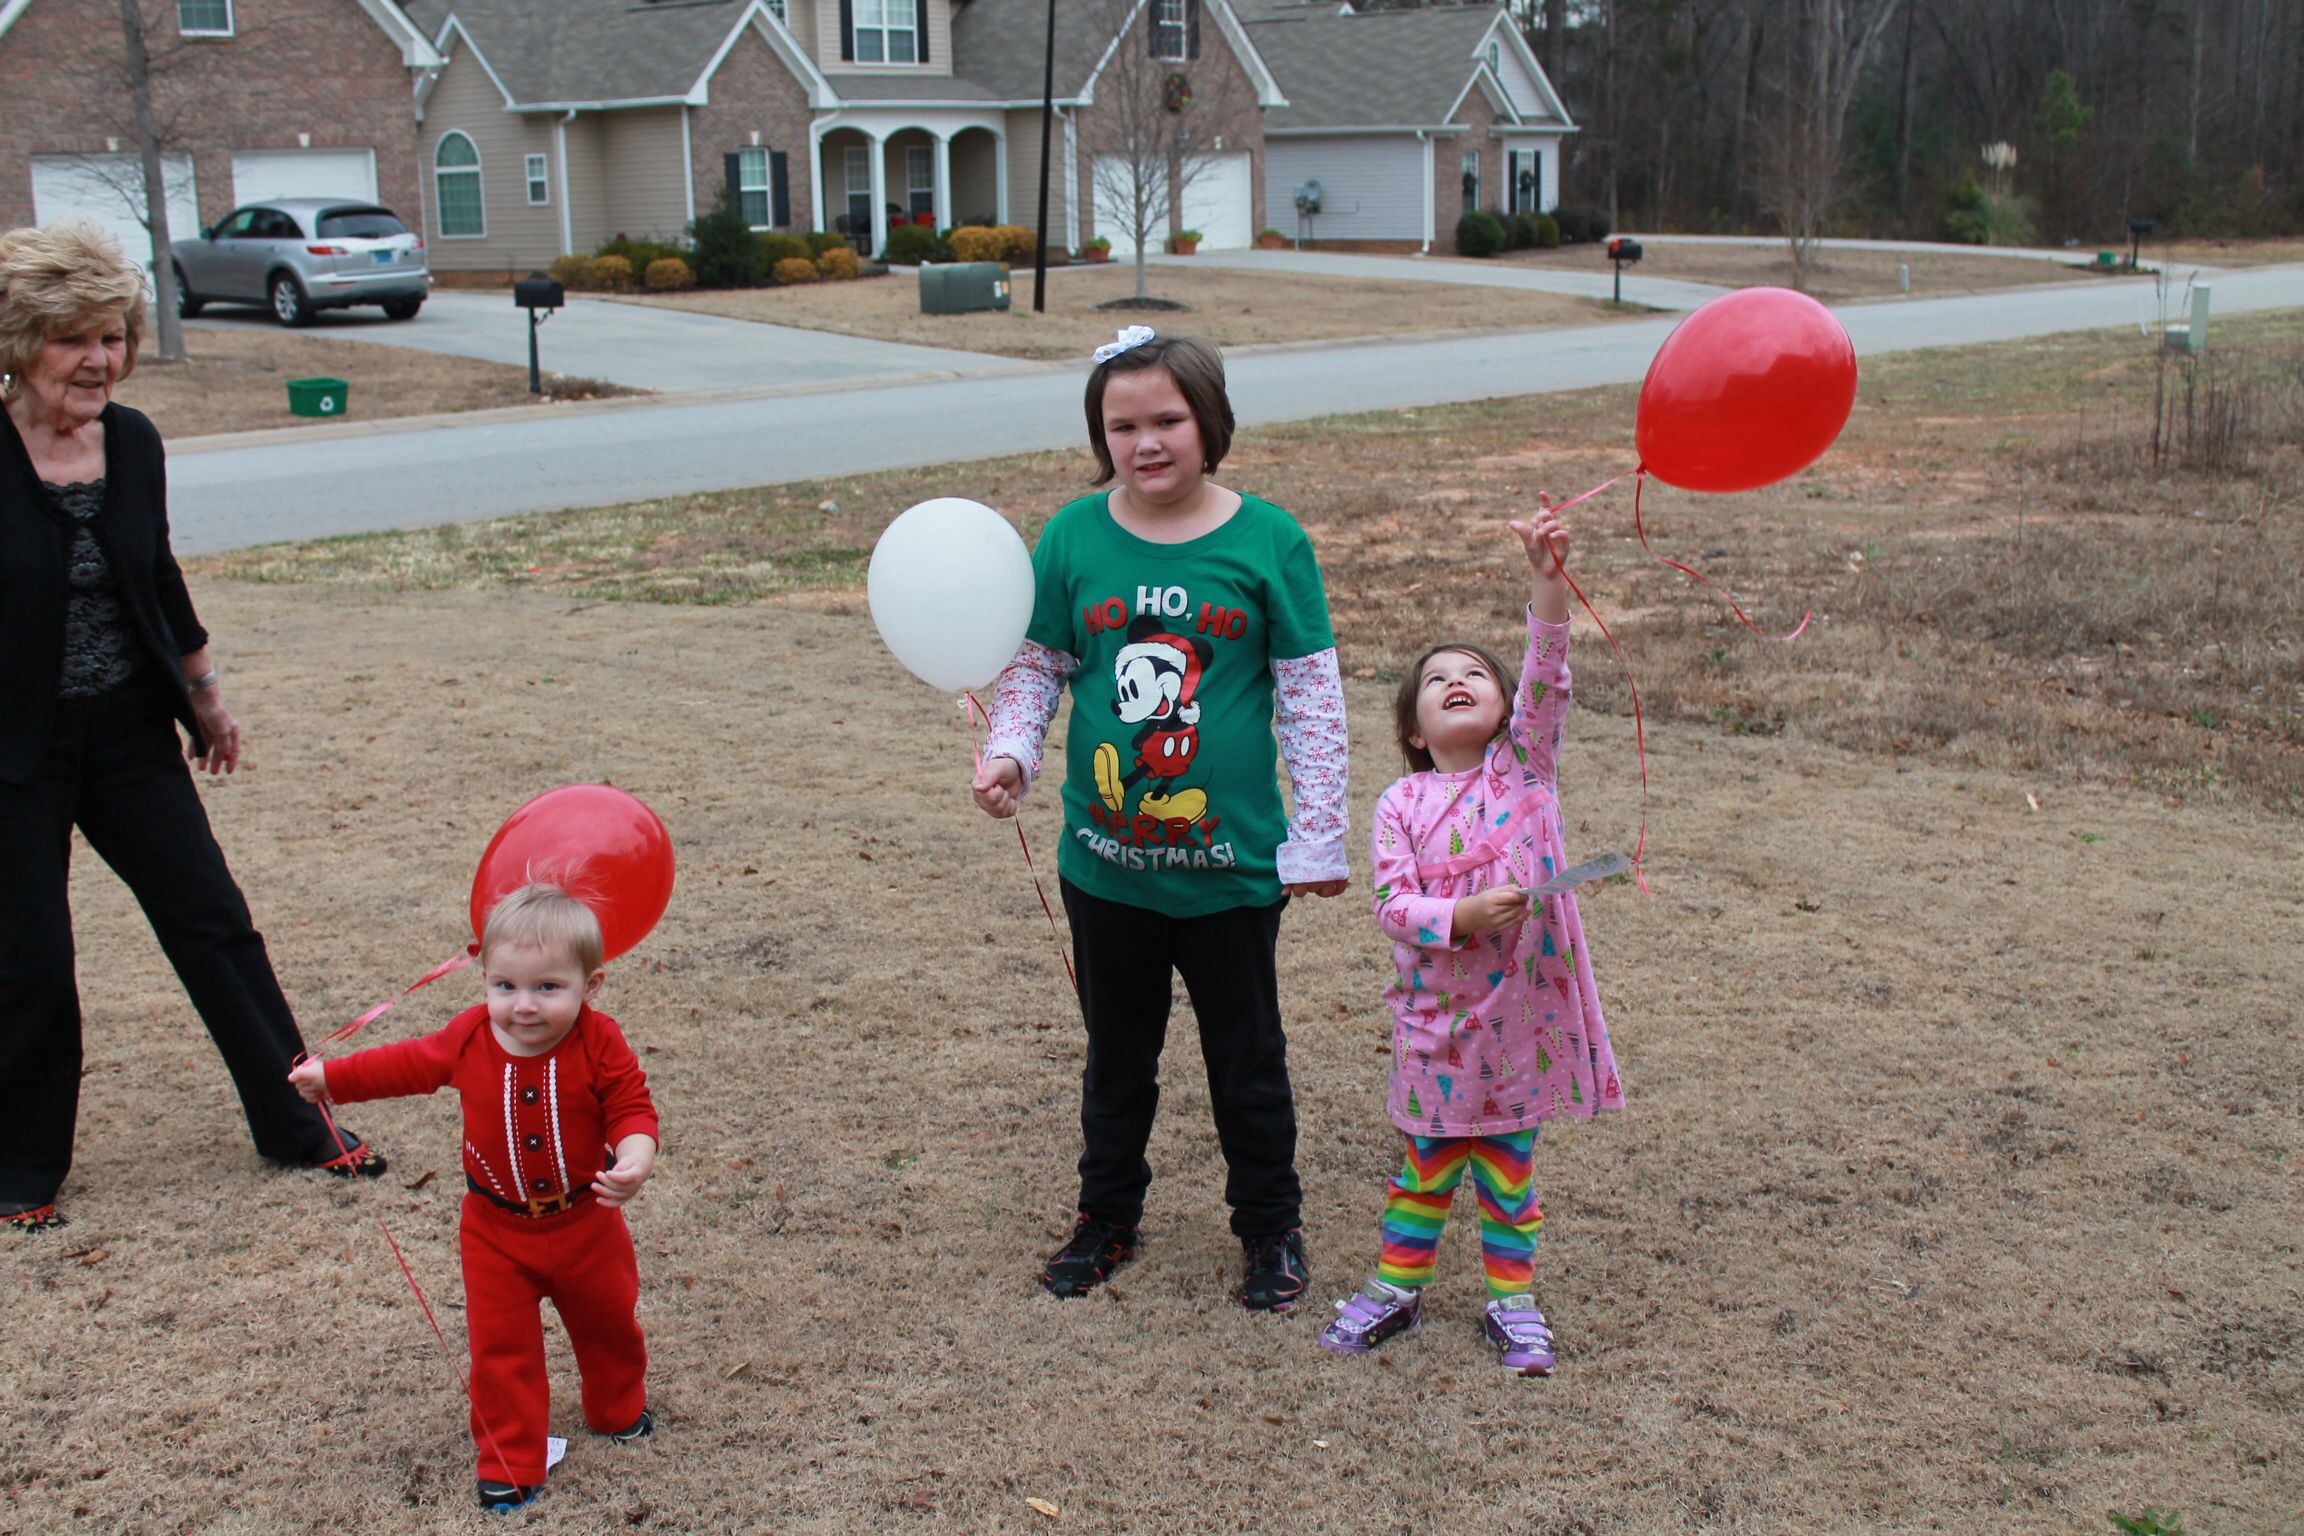 Release balloons to celebrate Jesus birthday (With images